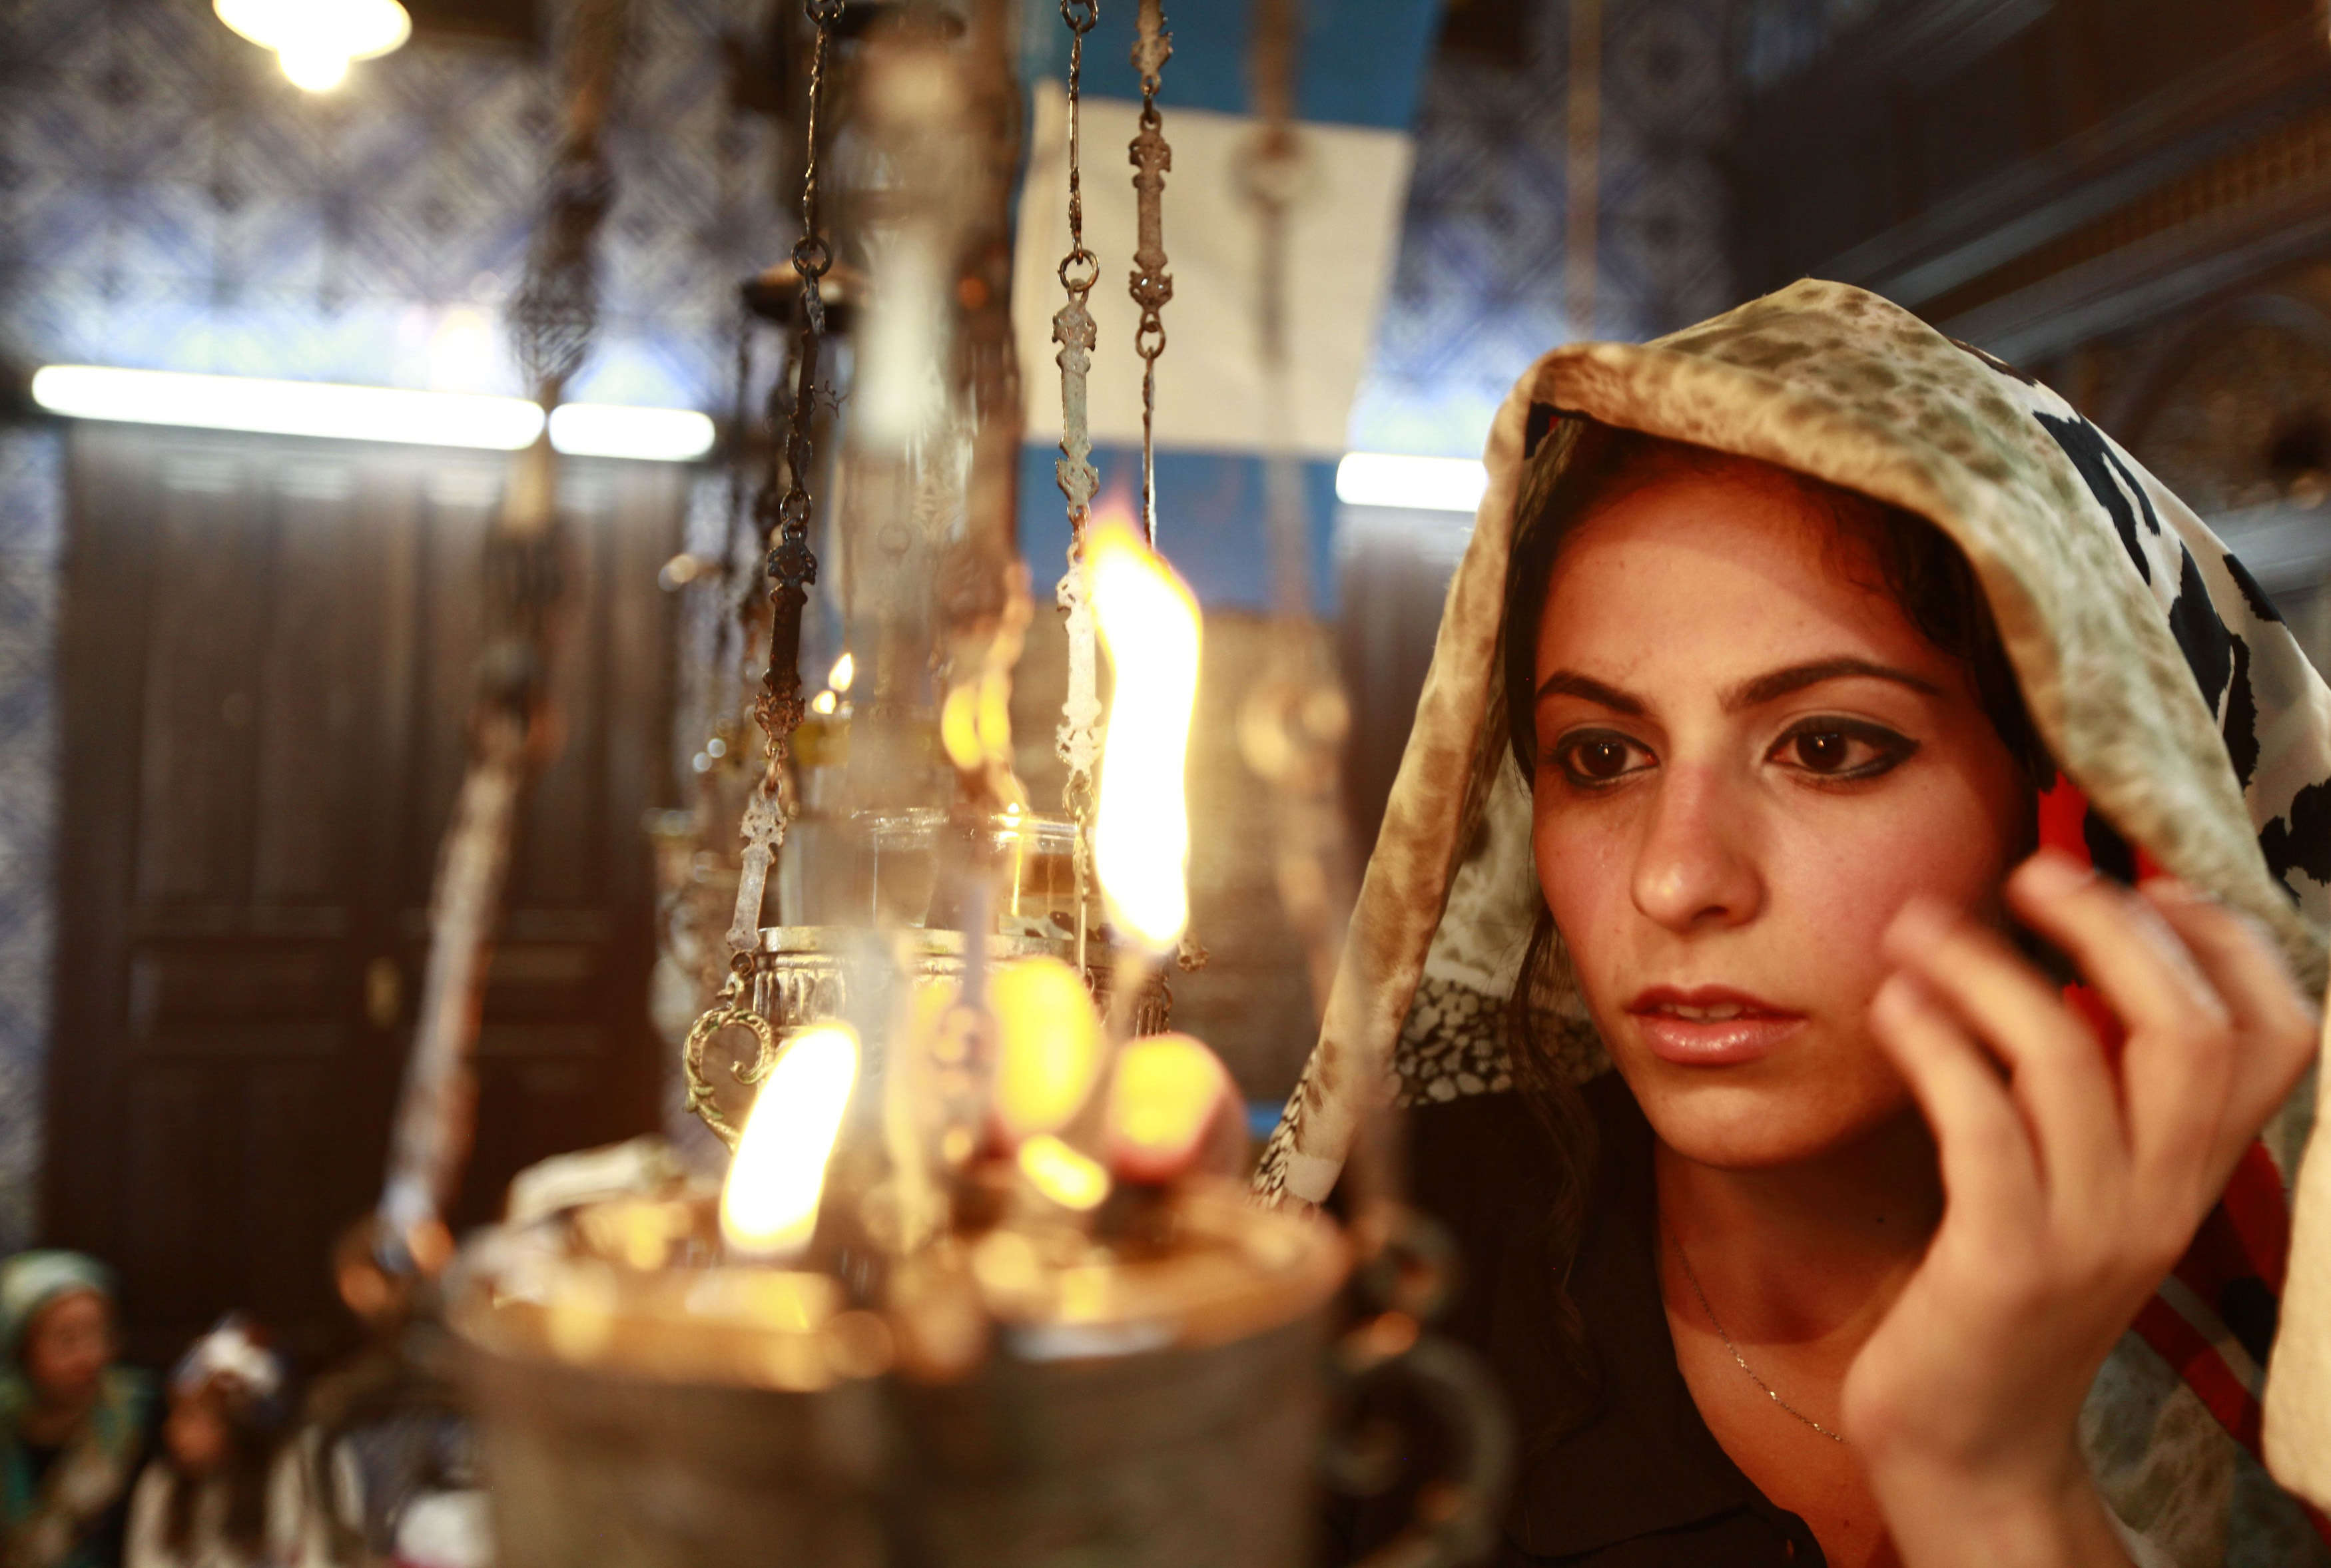 A Jewish worshipper prays during a pilgrimage to the El Ghriba synagogue in Djerba (ANIS MILI / REUTERS)